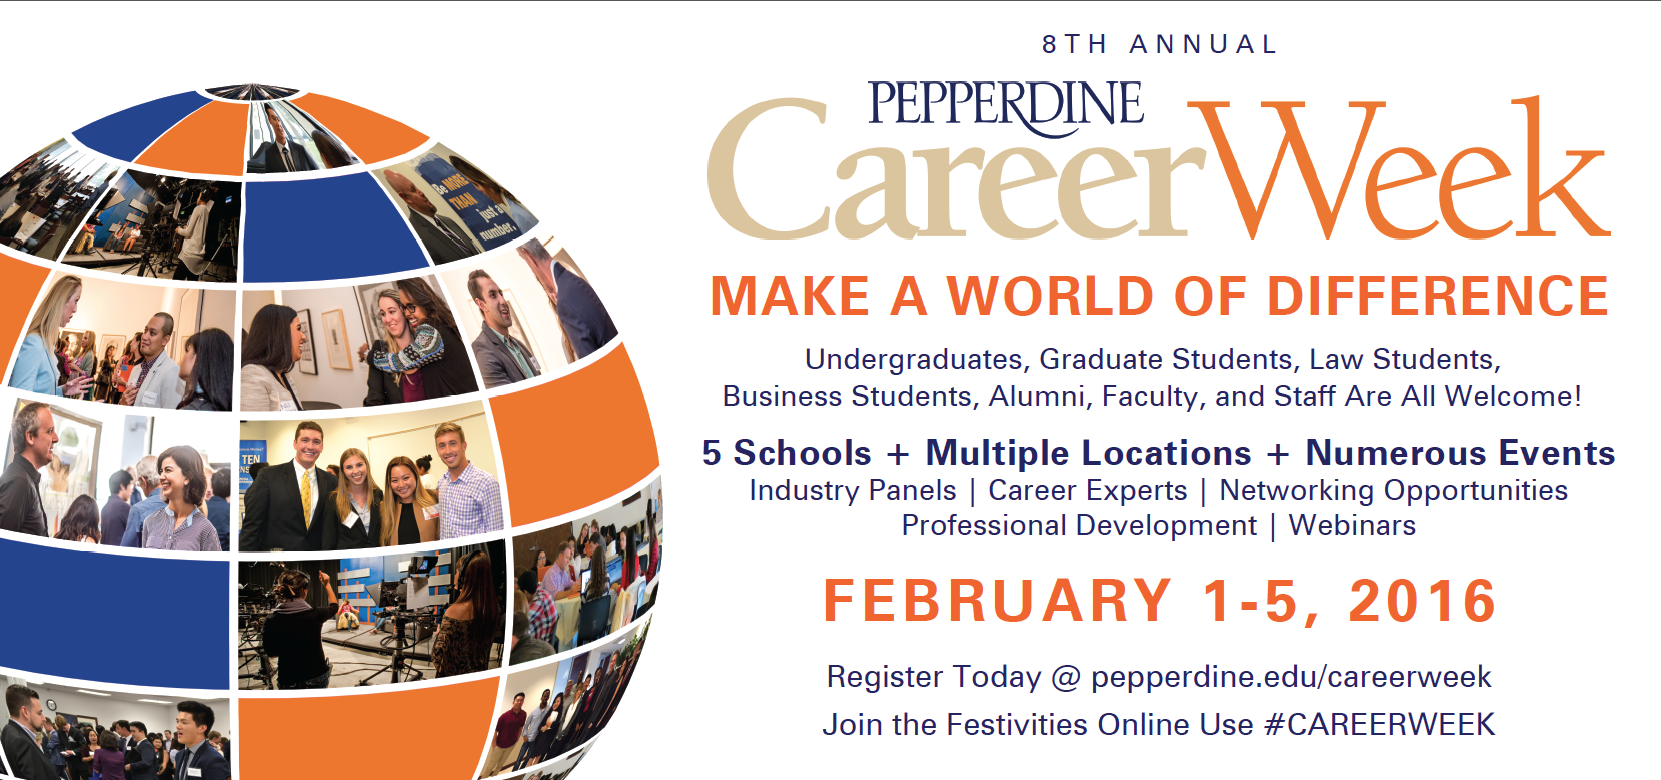 The eighth annual Pepperdine Career Week is open to all Pepperdine University students, alumni, faculty, staff, and friends. The week features professional development activities and programs for students preparing to make the transition from classroom to career and alumni seeking a competitive advantage in the workplace. Events will occur over five days at five Pepperdine campuses across Southern California as well as online sessions. Check out the list of events below - all programs are free to attend unless indicated. Visit the Pepperdine Career Services website for more resources.